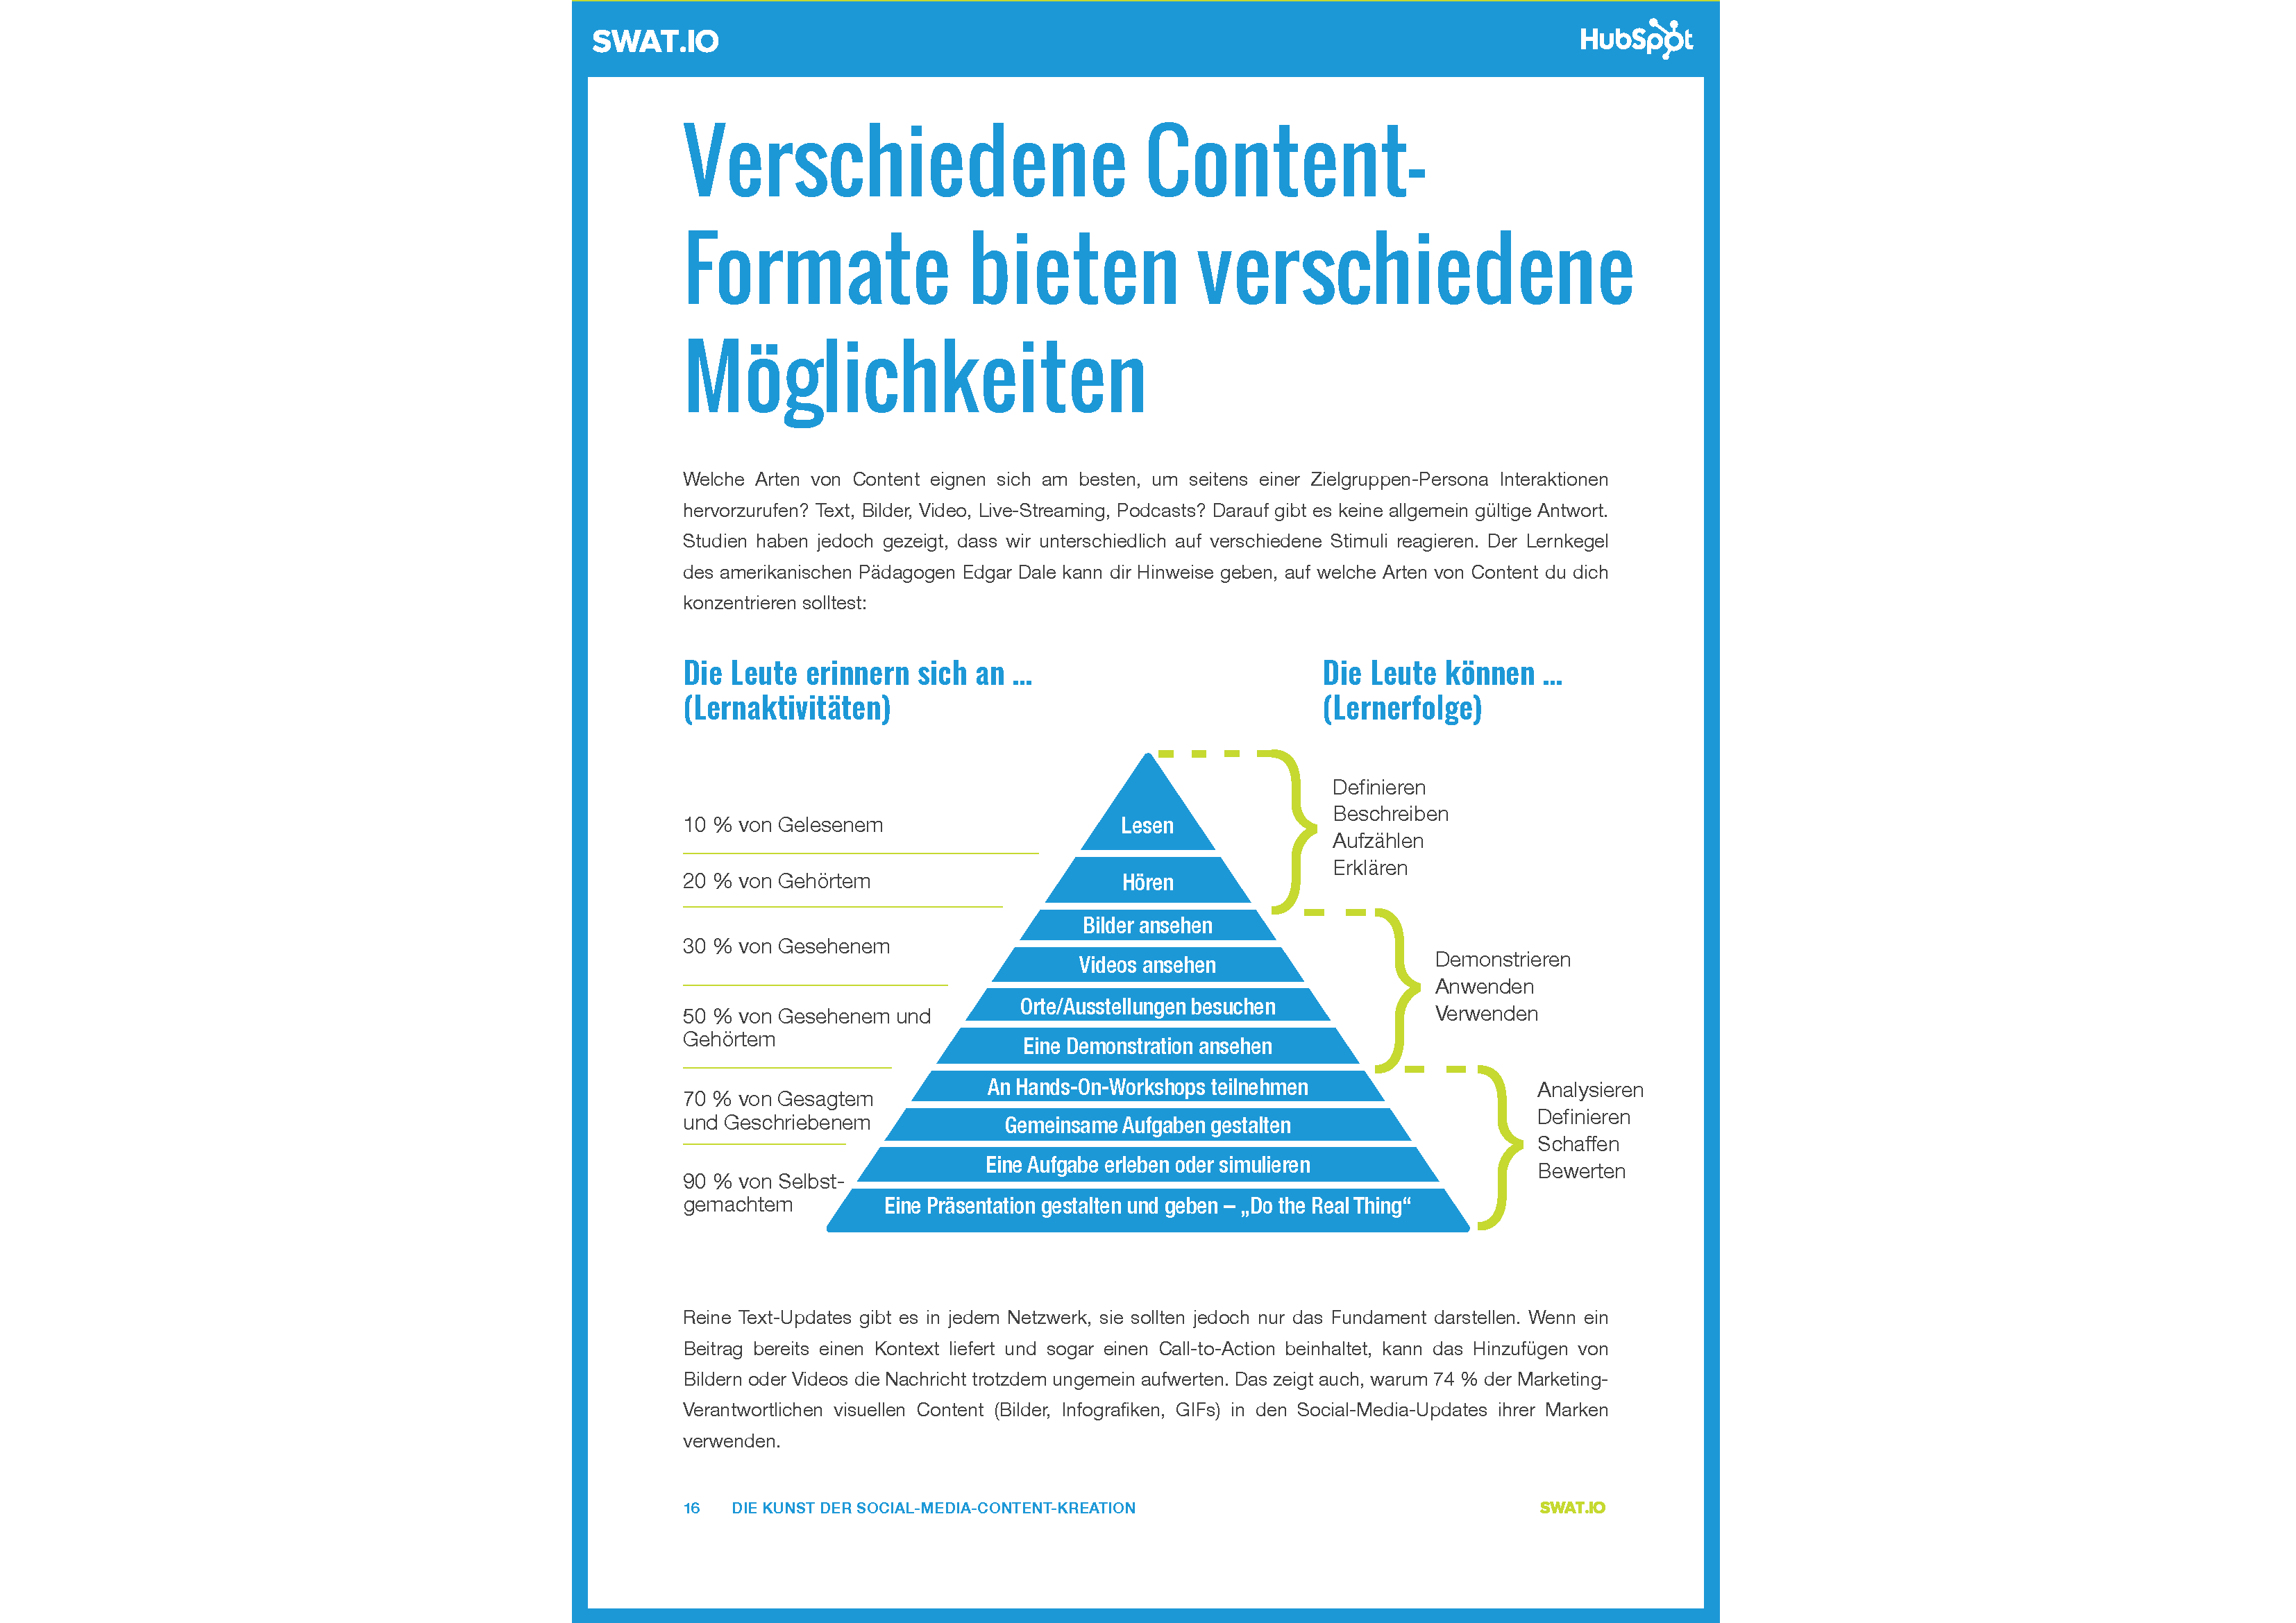 Die Kunst der Social Media Content-Kreation